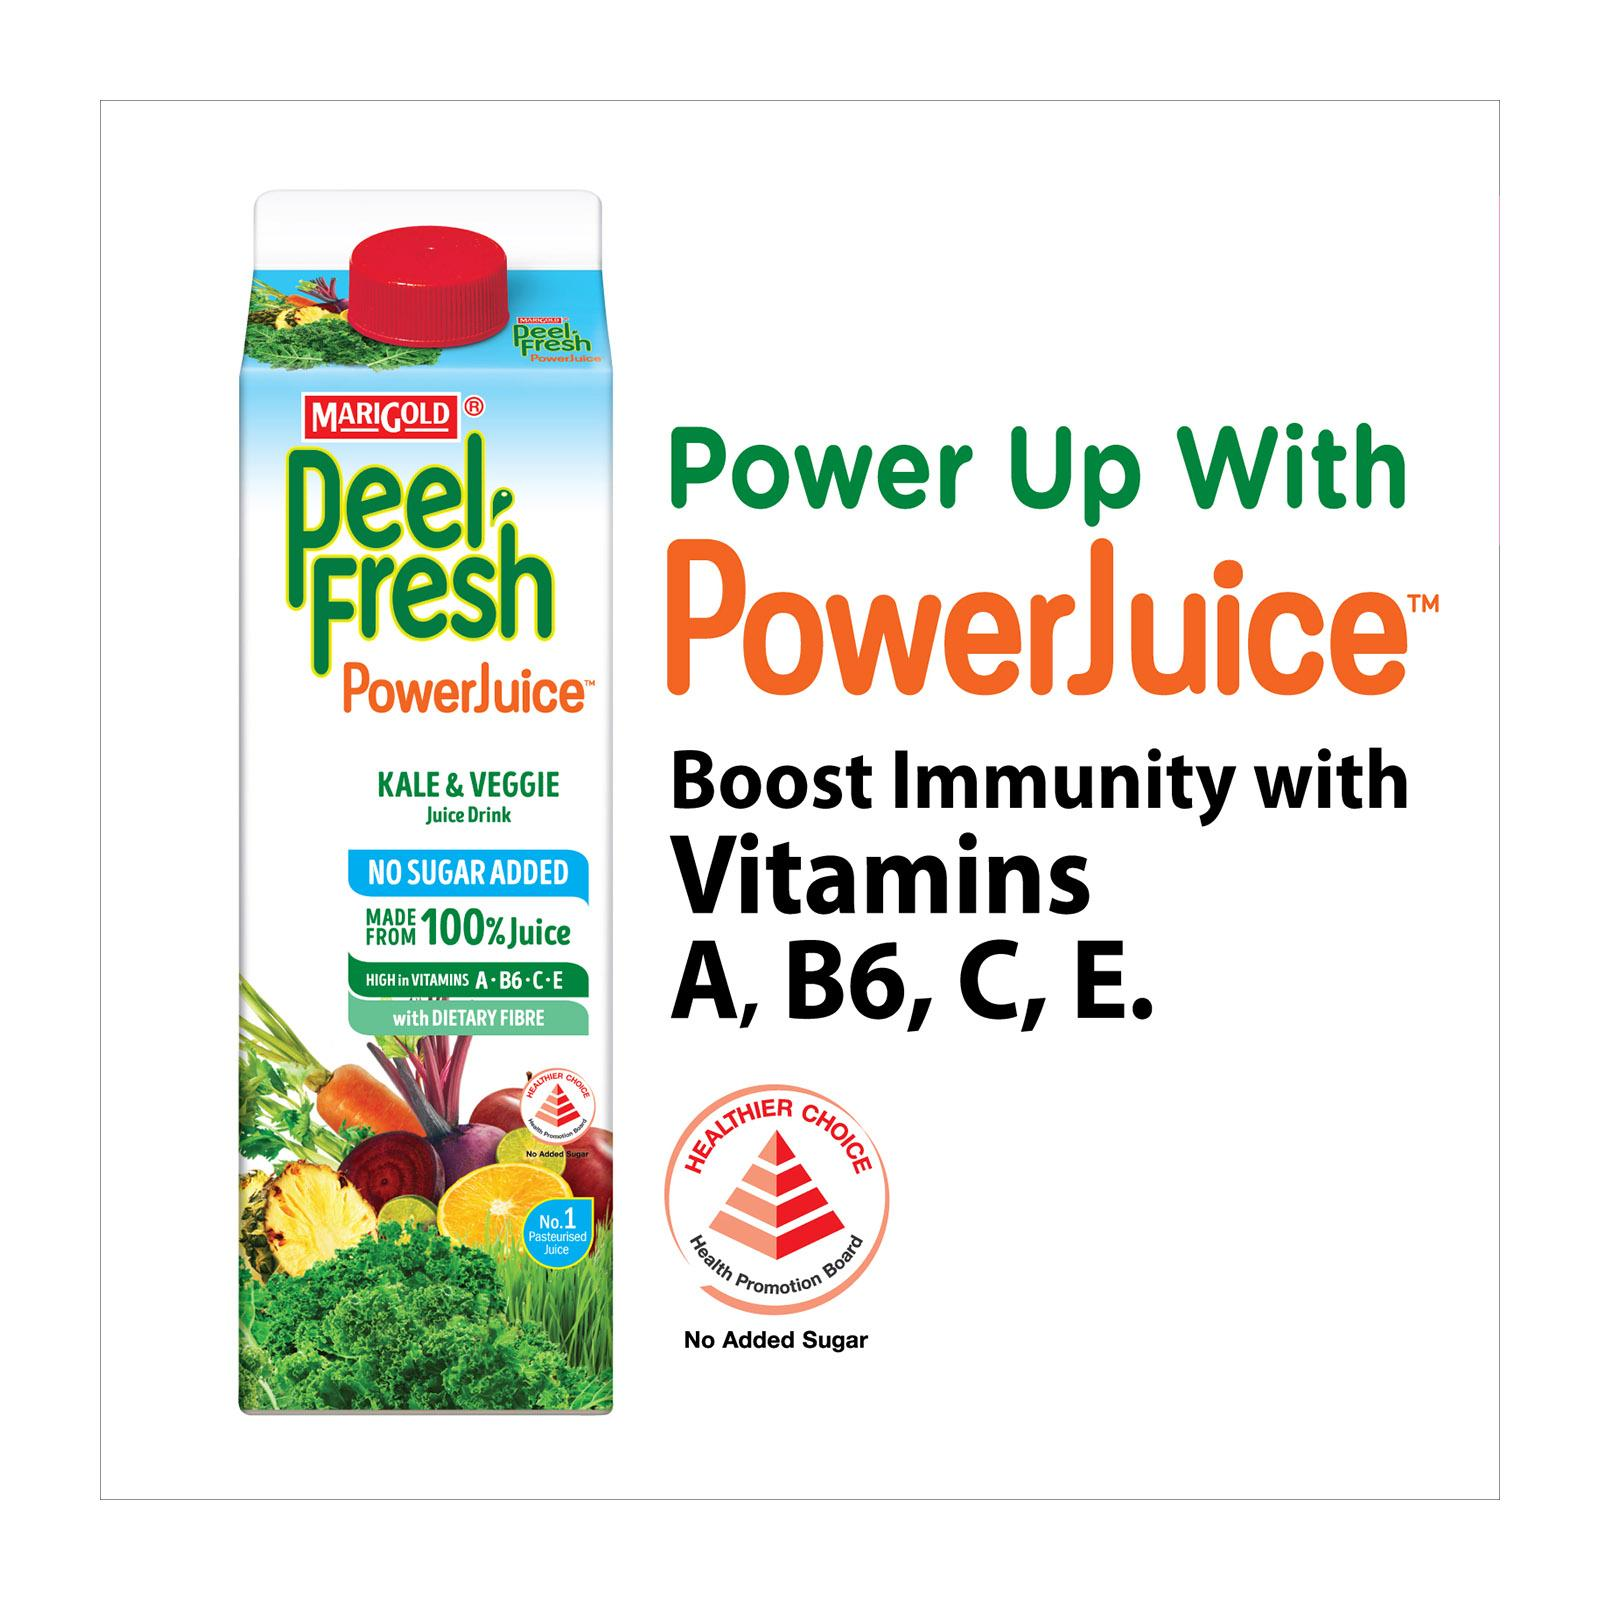 MARIGOLD Peel Fresh No Sugar Added Juice Drink - Kale and Veggie